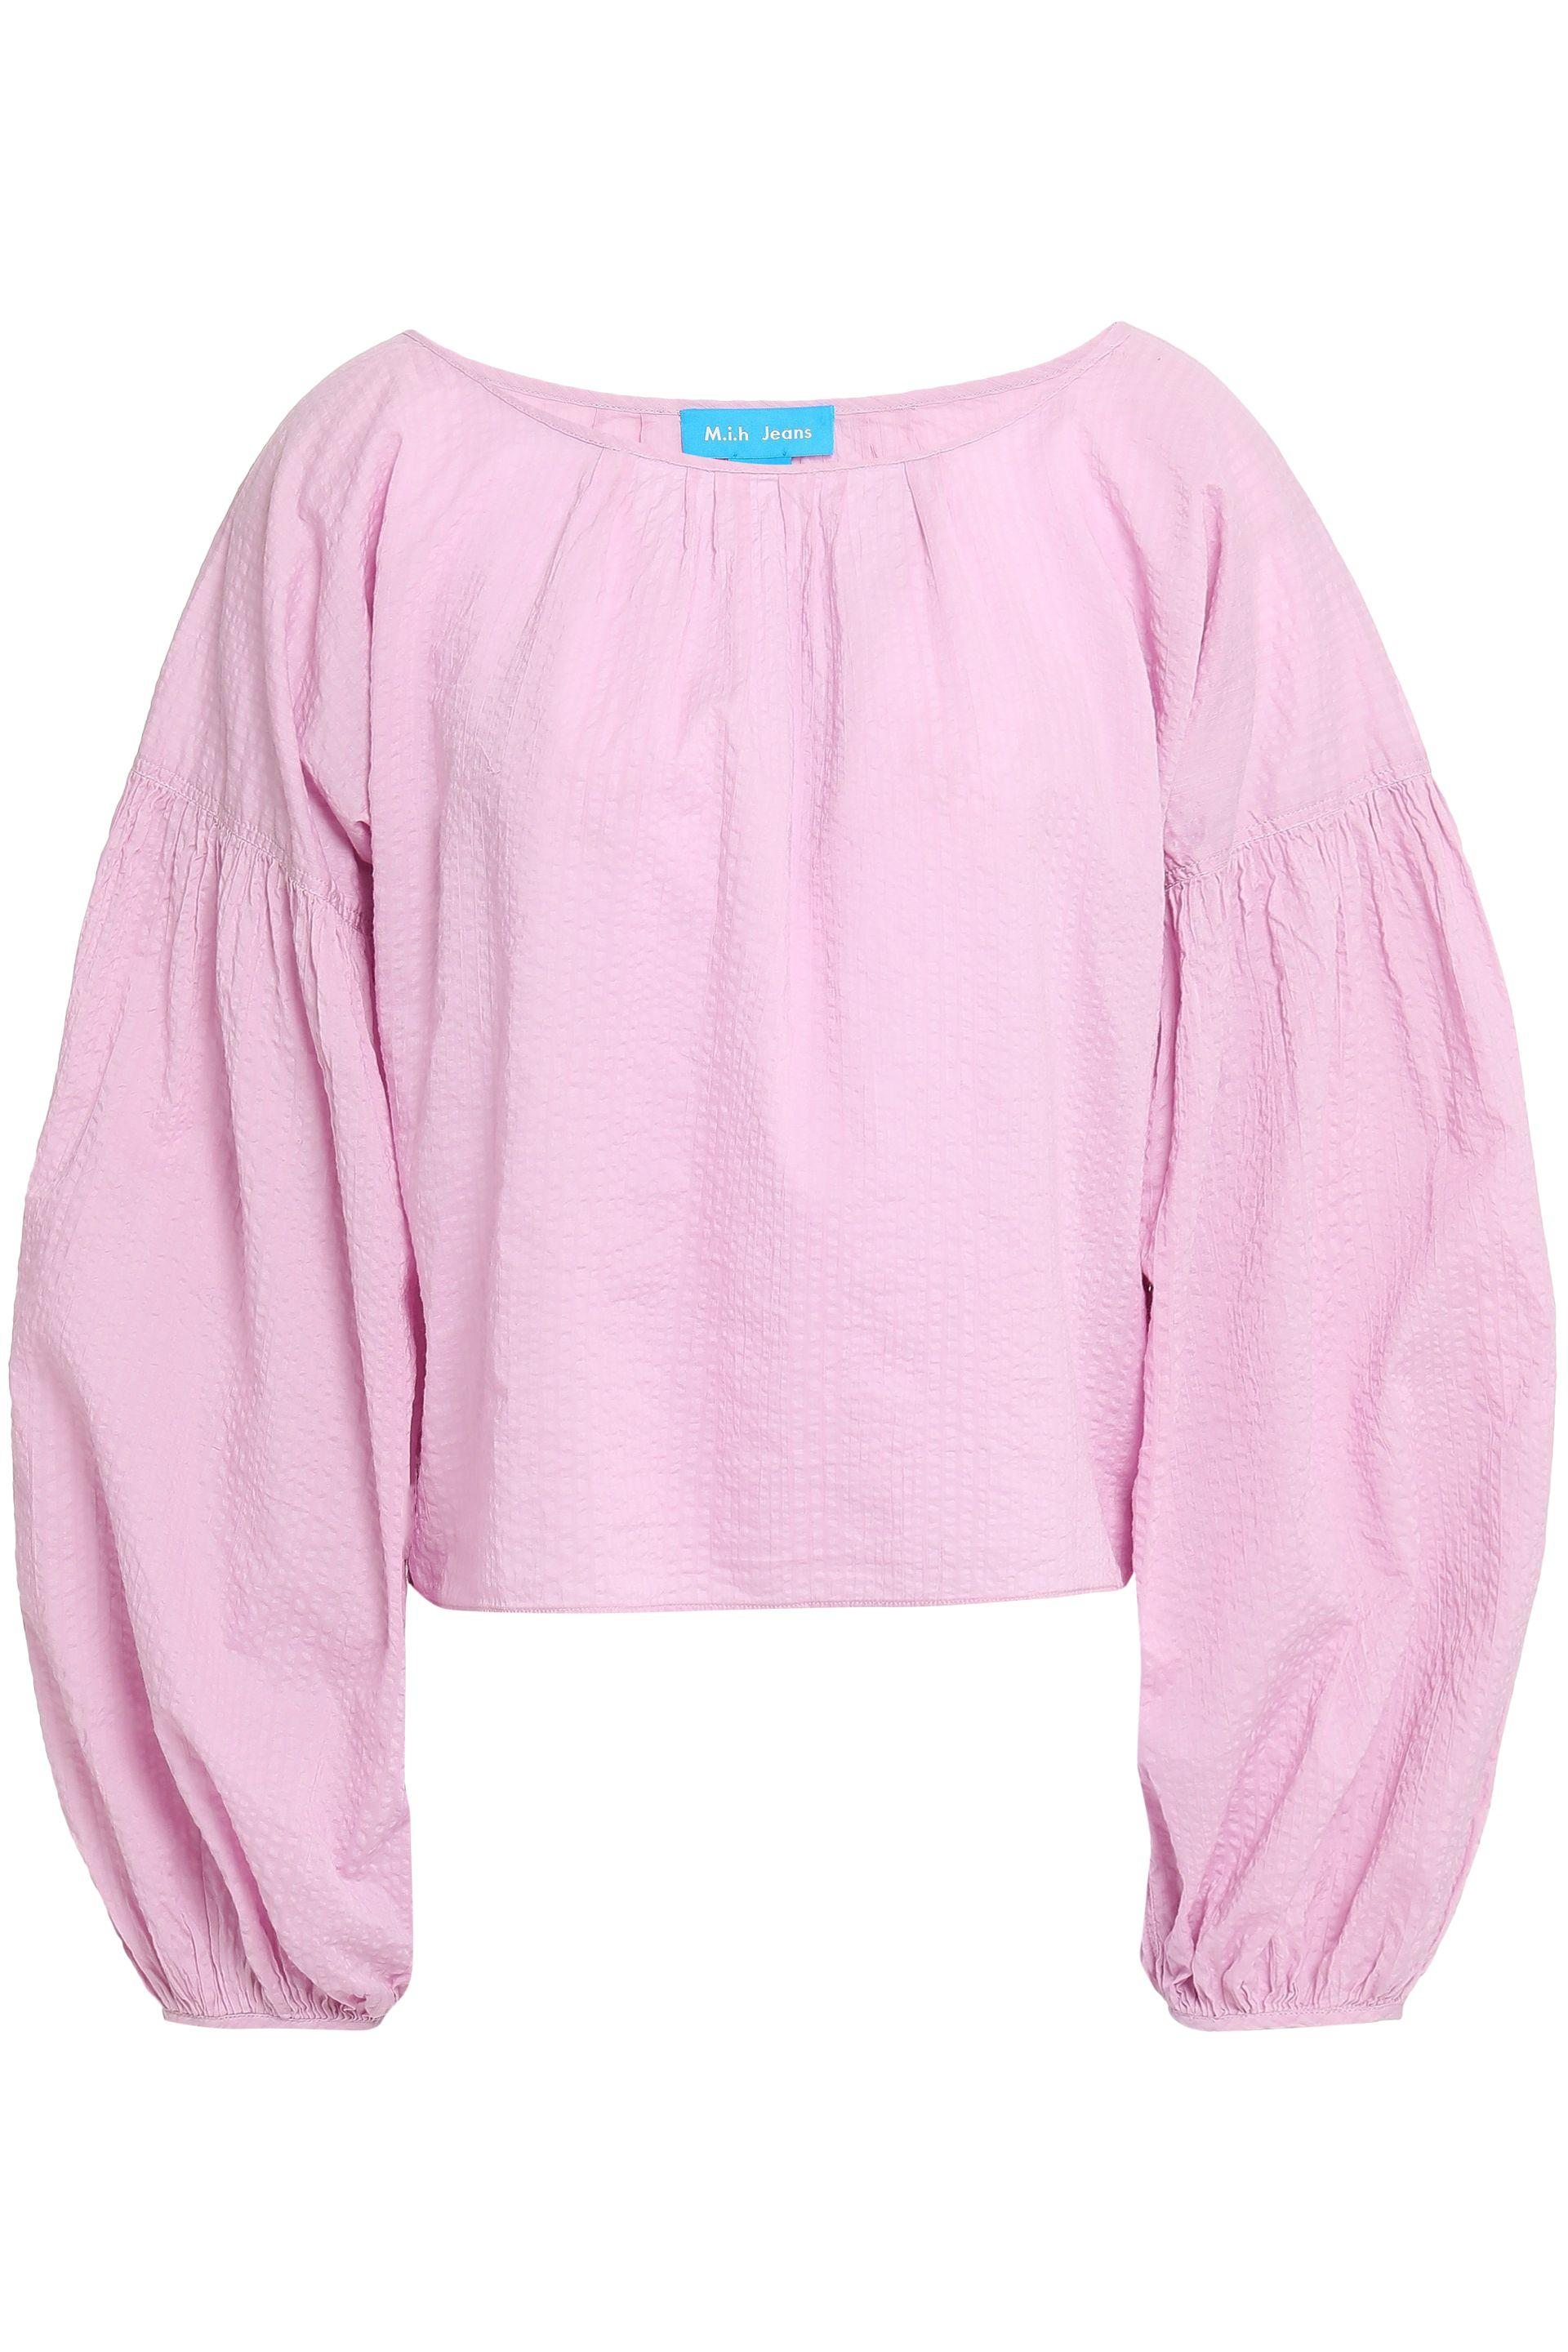 732a4ae3e0c M.i.h Jeans Woman Cotton Seersucker Top Lavender in Pink - Lyst